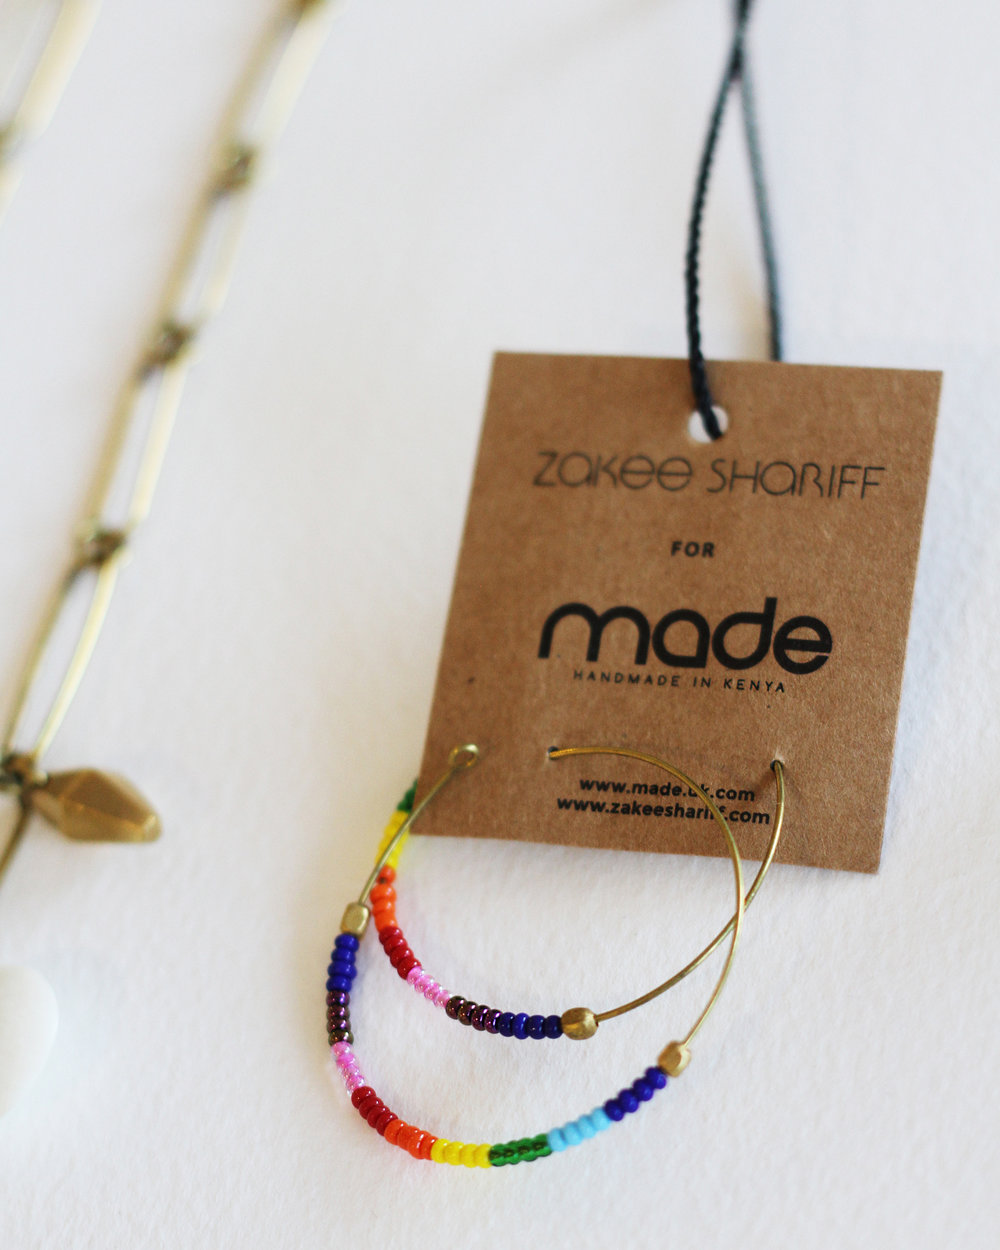 zakee-shariff-made-earrings.jpg